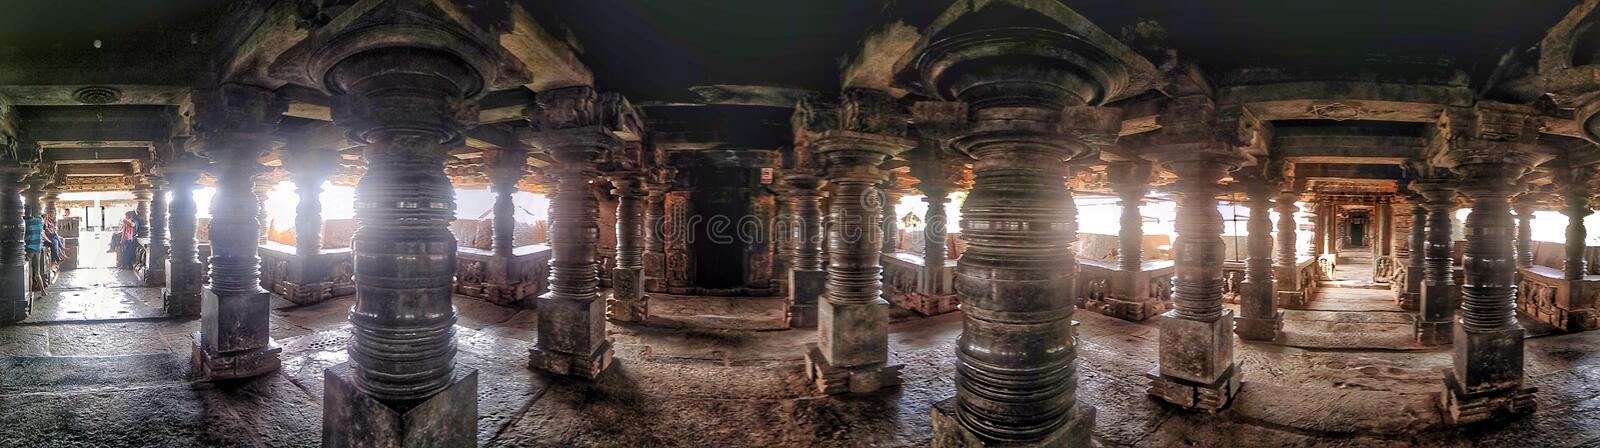 The Veeranarayana Hoysala temple at Belavadi royalty free stock images